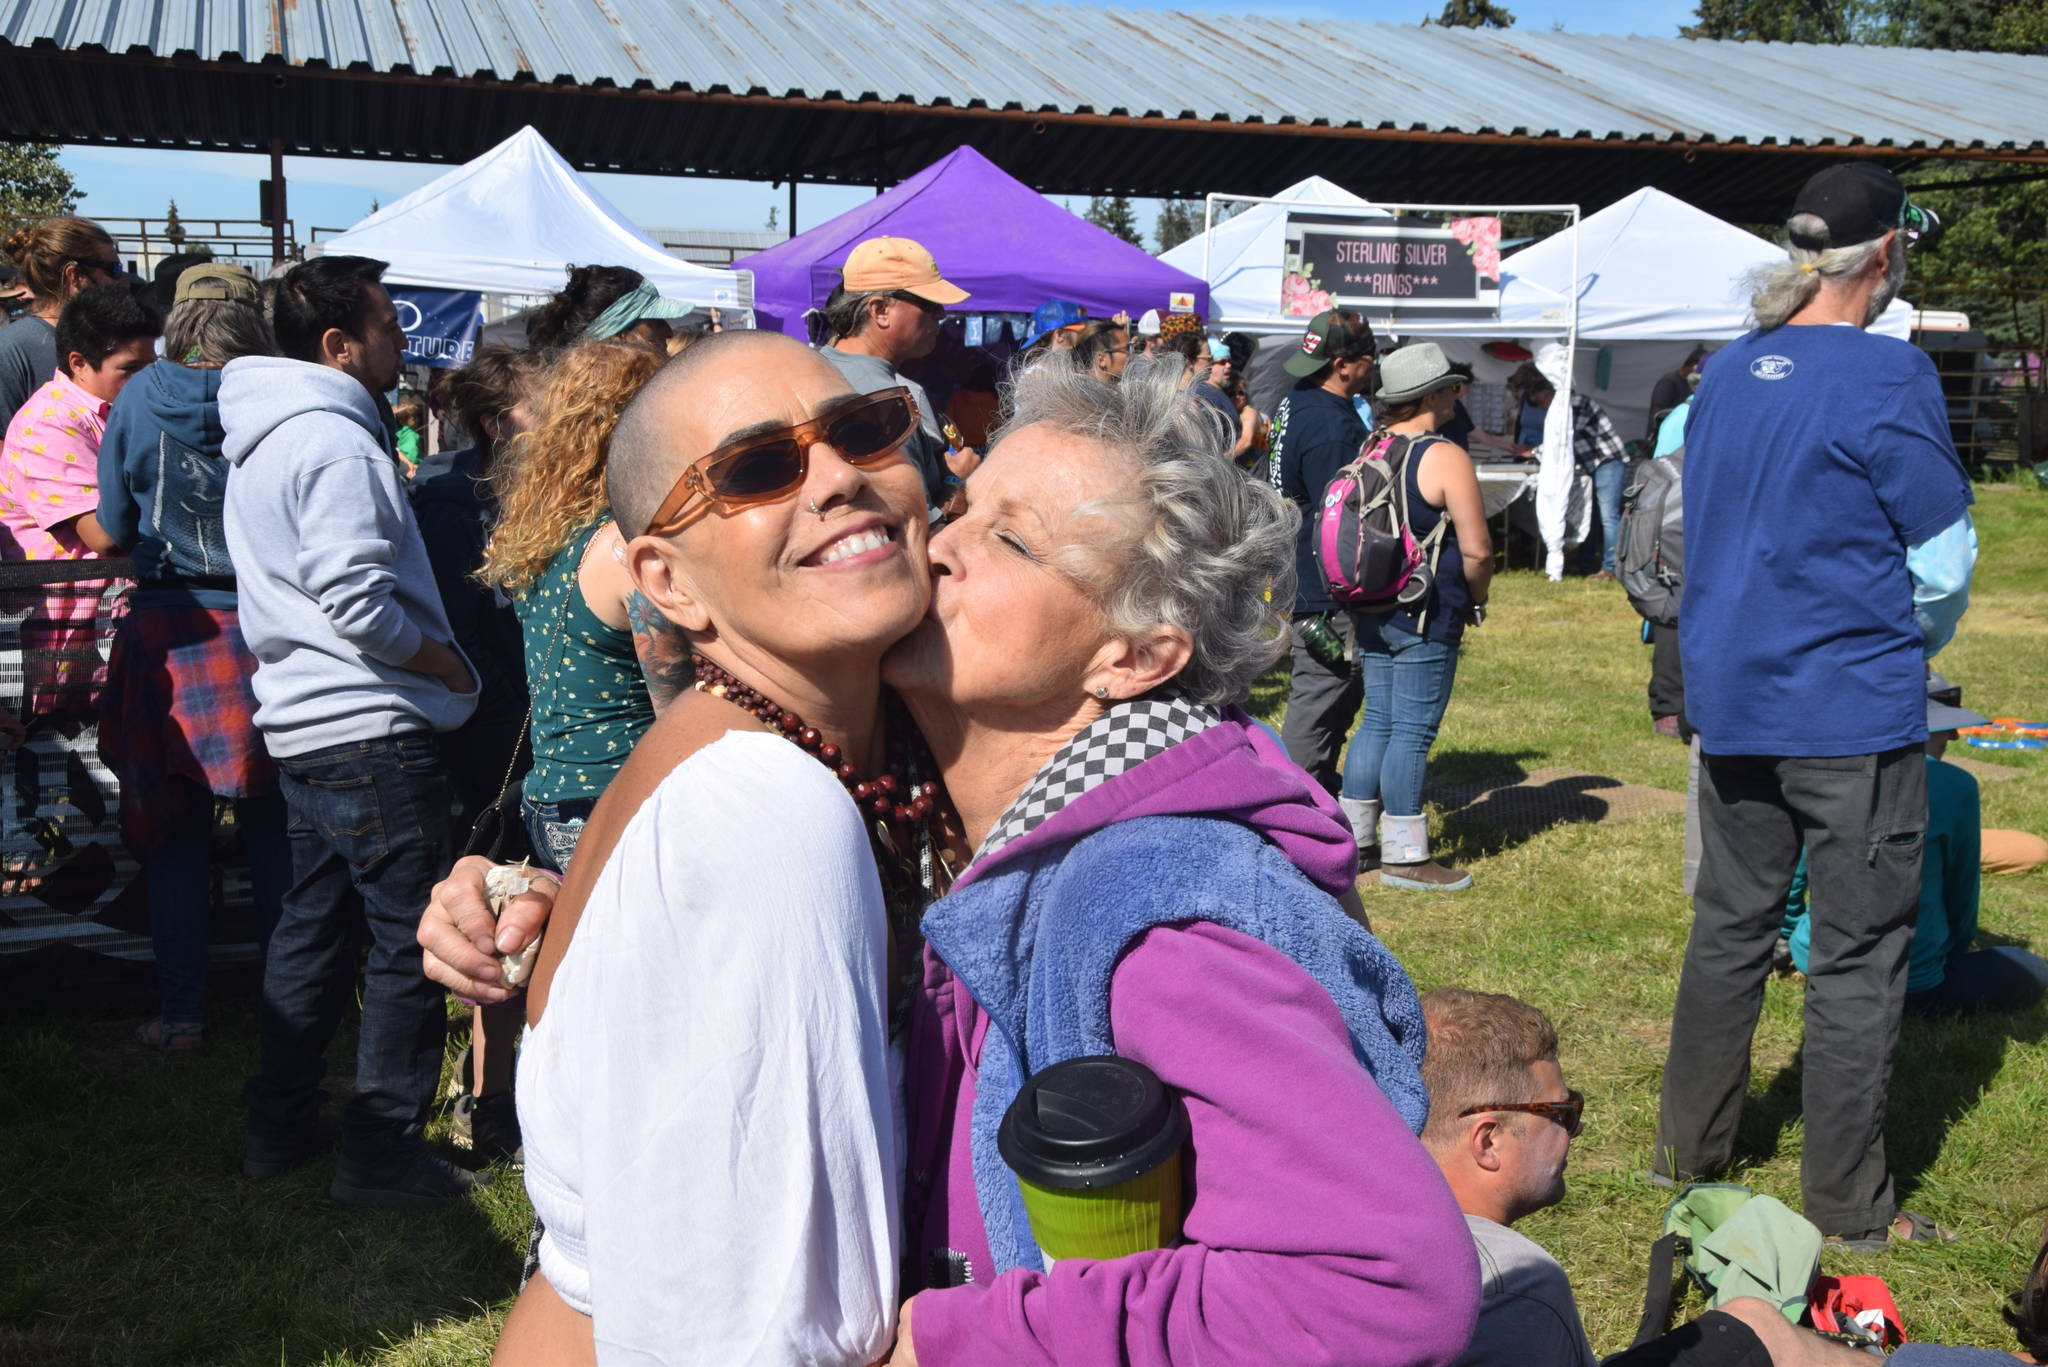 Monet Barbee, left and Judy Casey, right, pose for the camera during Salmonfest 2019 in Ninilchik, Alaska on August 2, 2019. (Photo by Brian Mazurek/Peninsula Clarion)